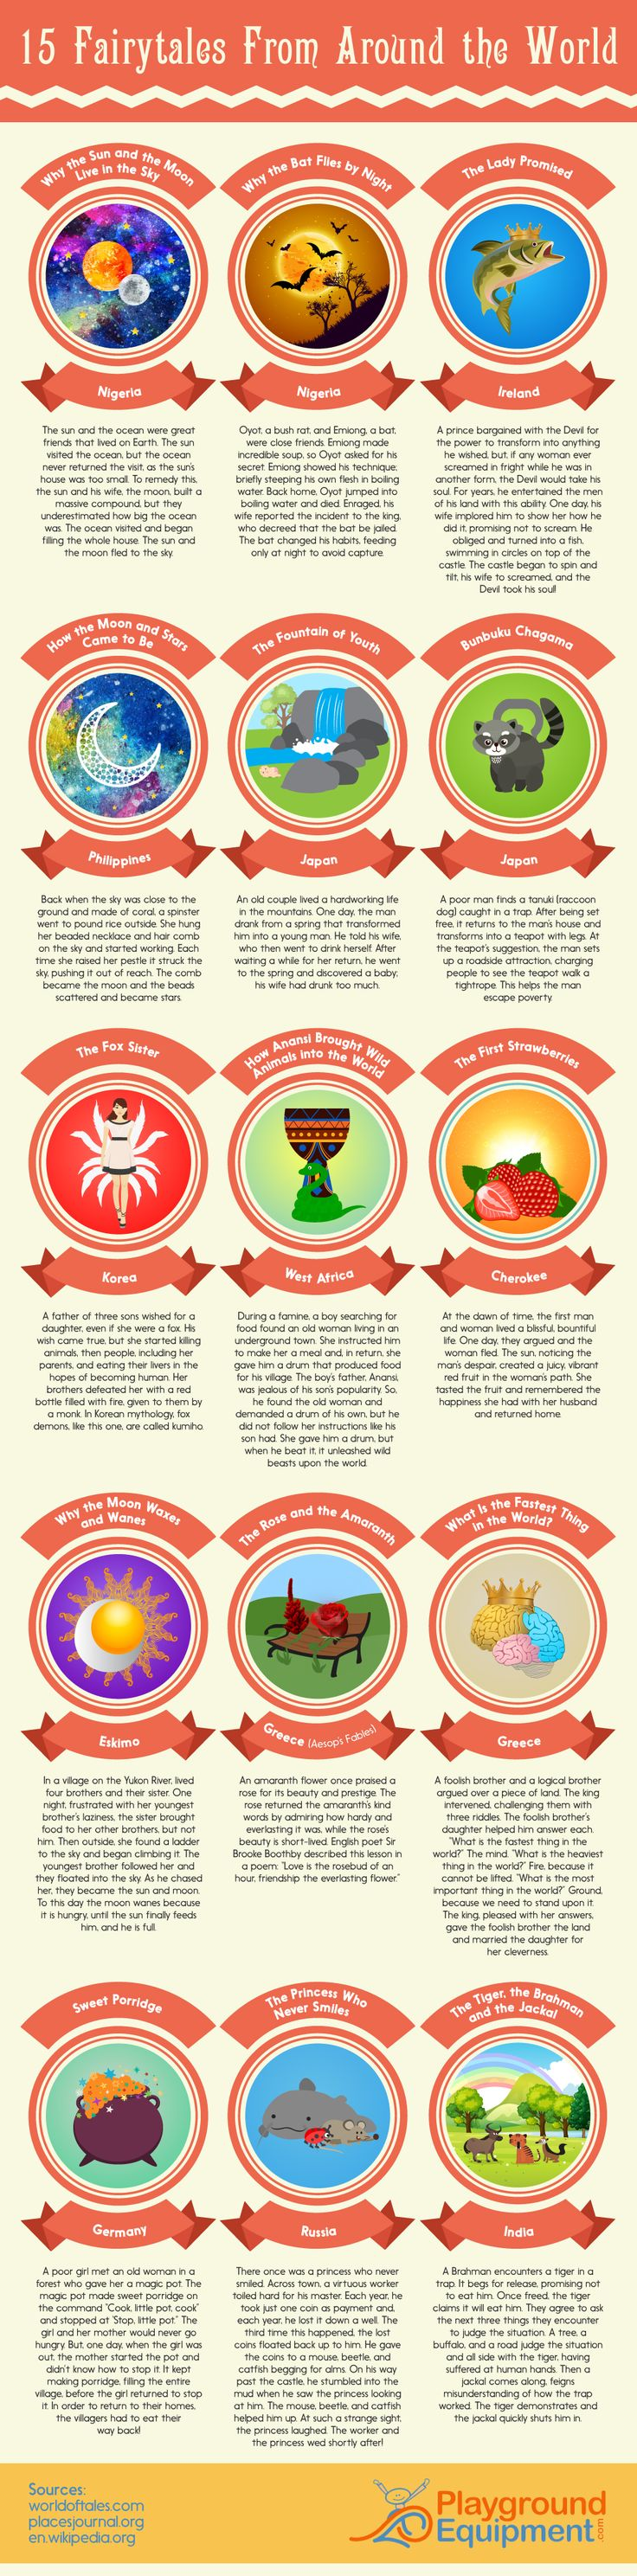 17 best ideas about myth stories ancient i m adding this infographic to a beginning list of the best folklore myth sites addendumn here is a comment left by a reader an interesting info